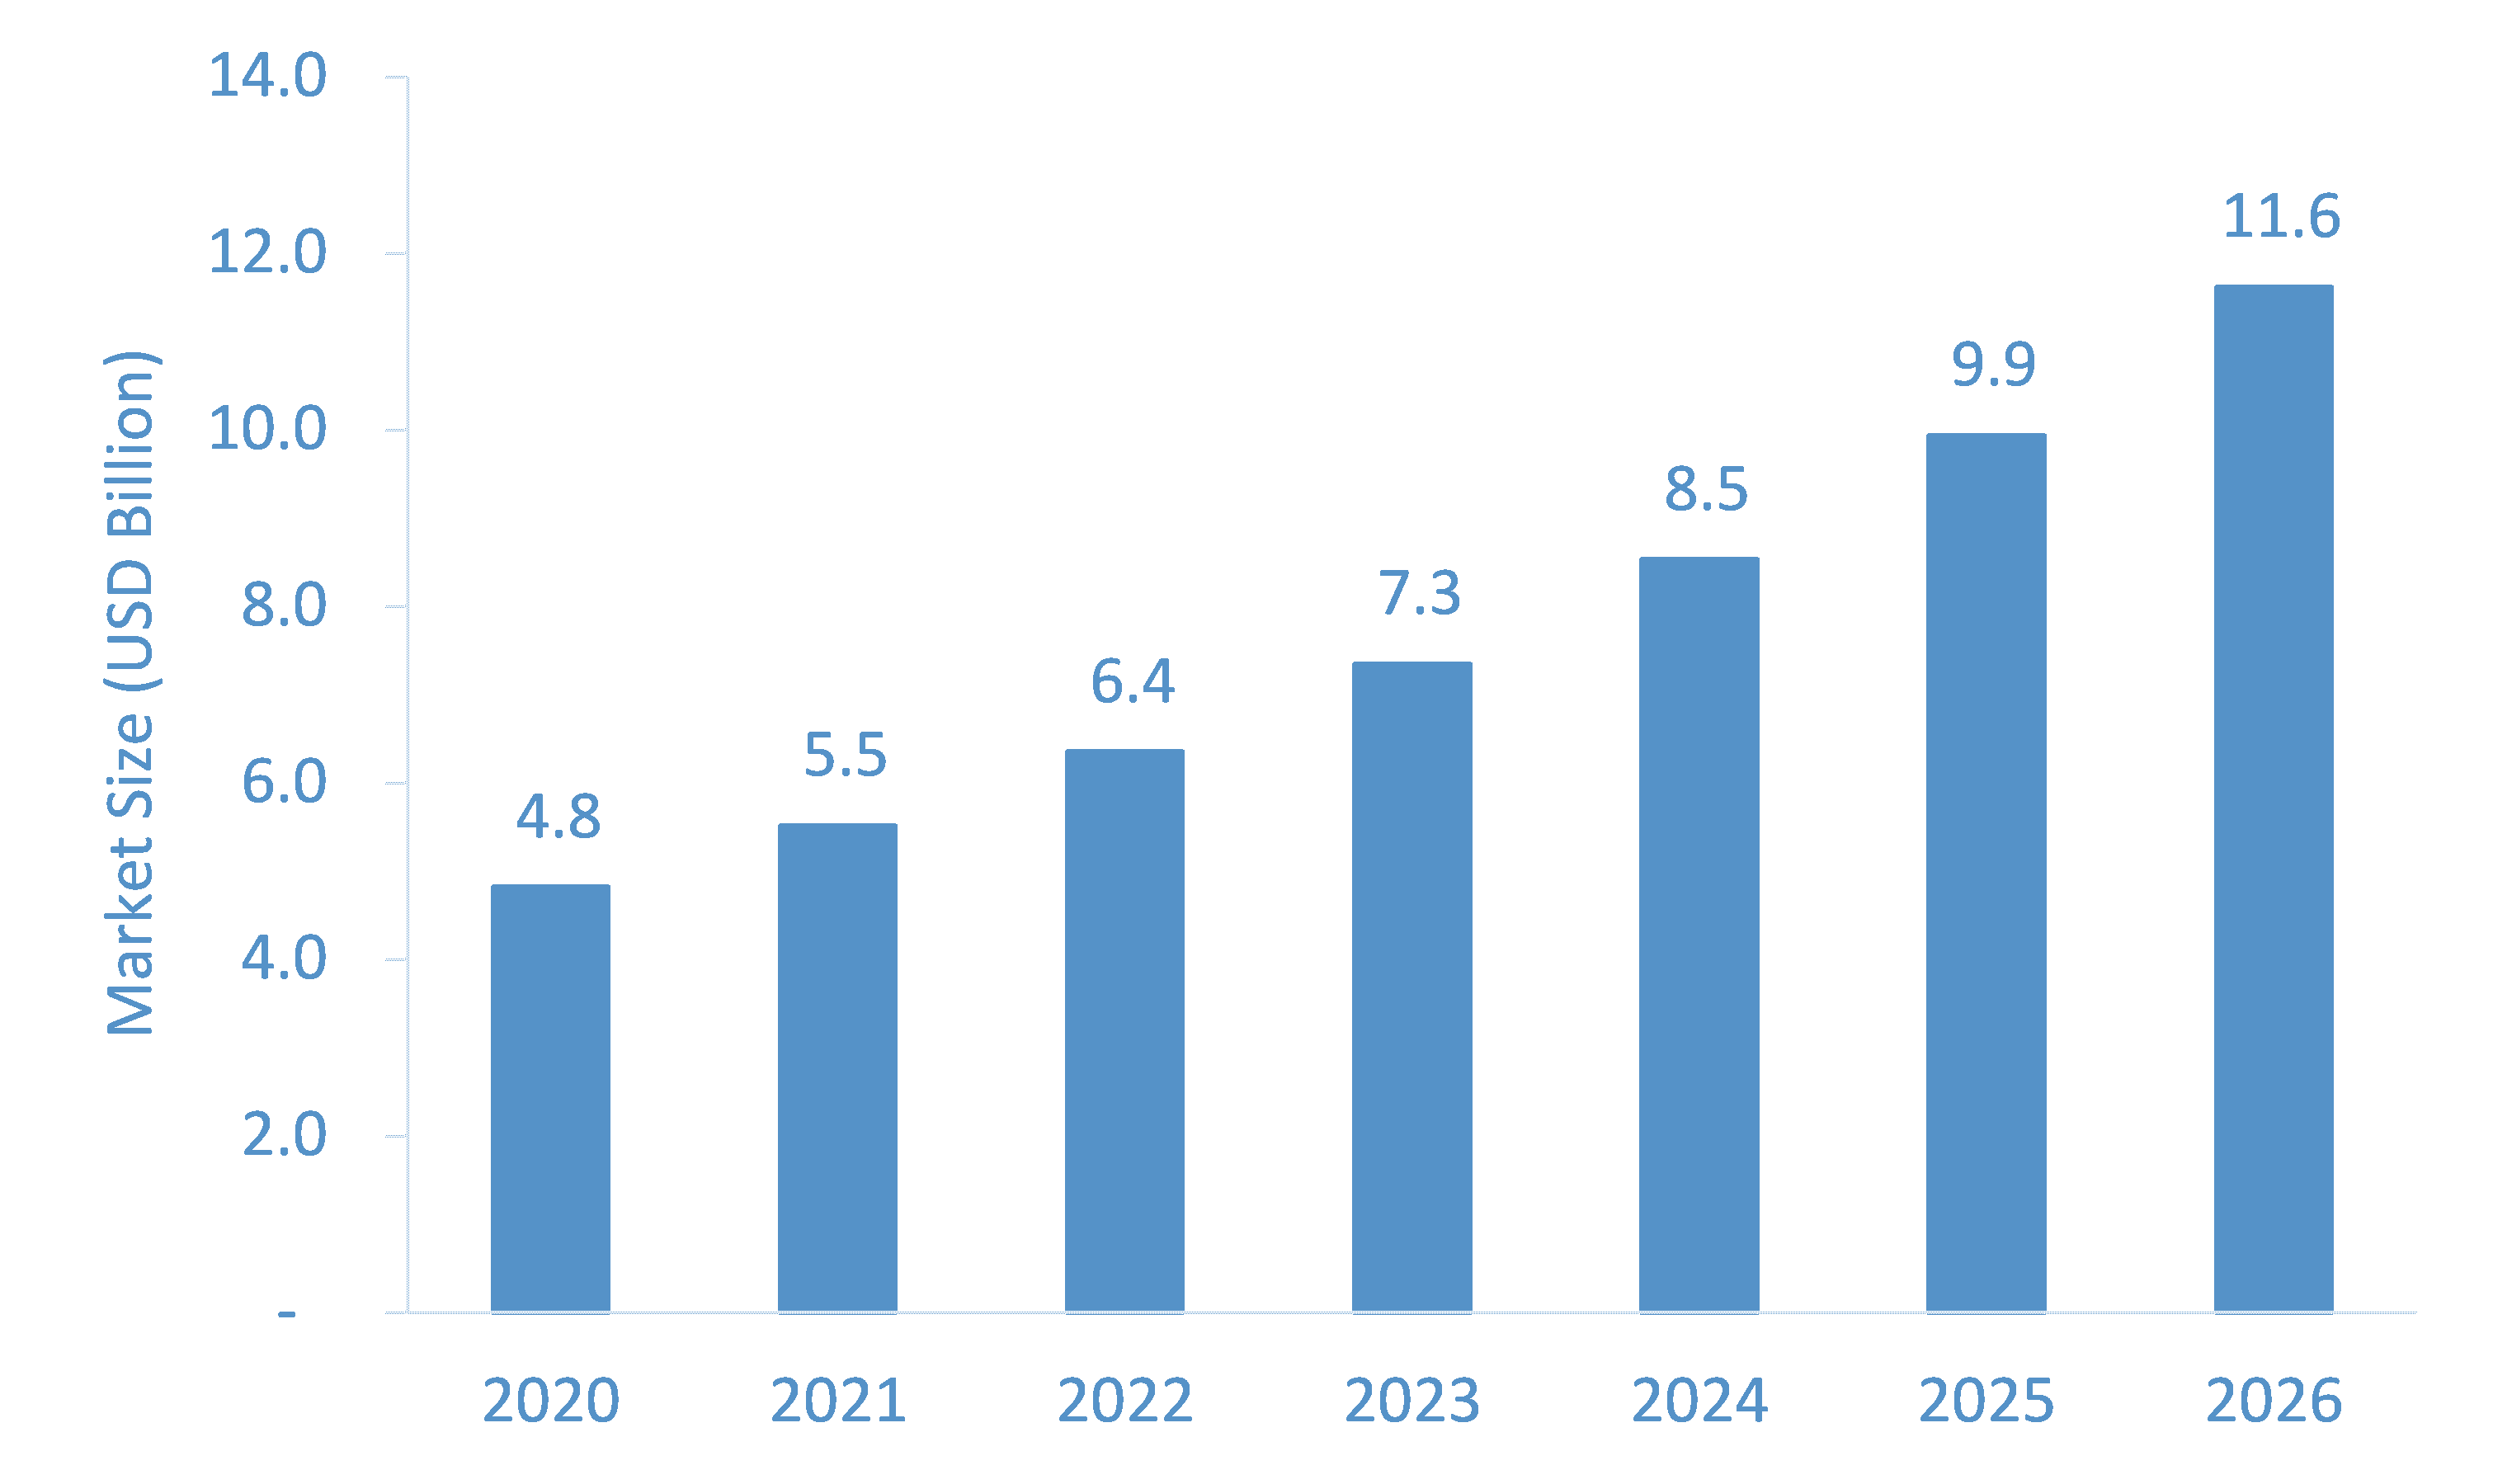 HPV Vaccines Market Size, Emerging Trends, Forecasts, and Analysis 2021-2026